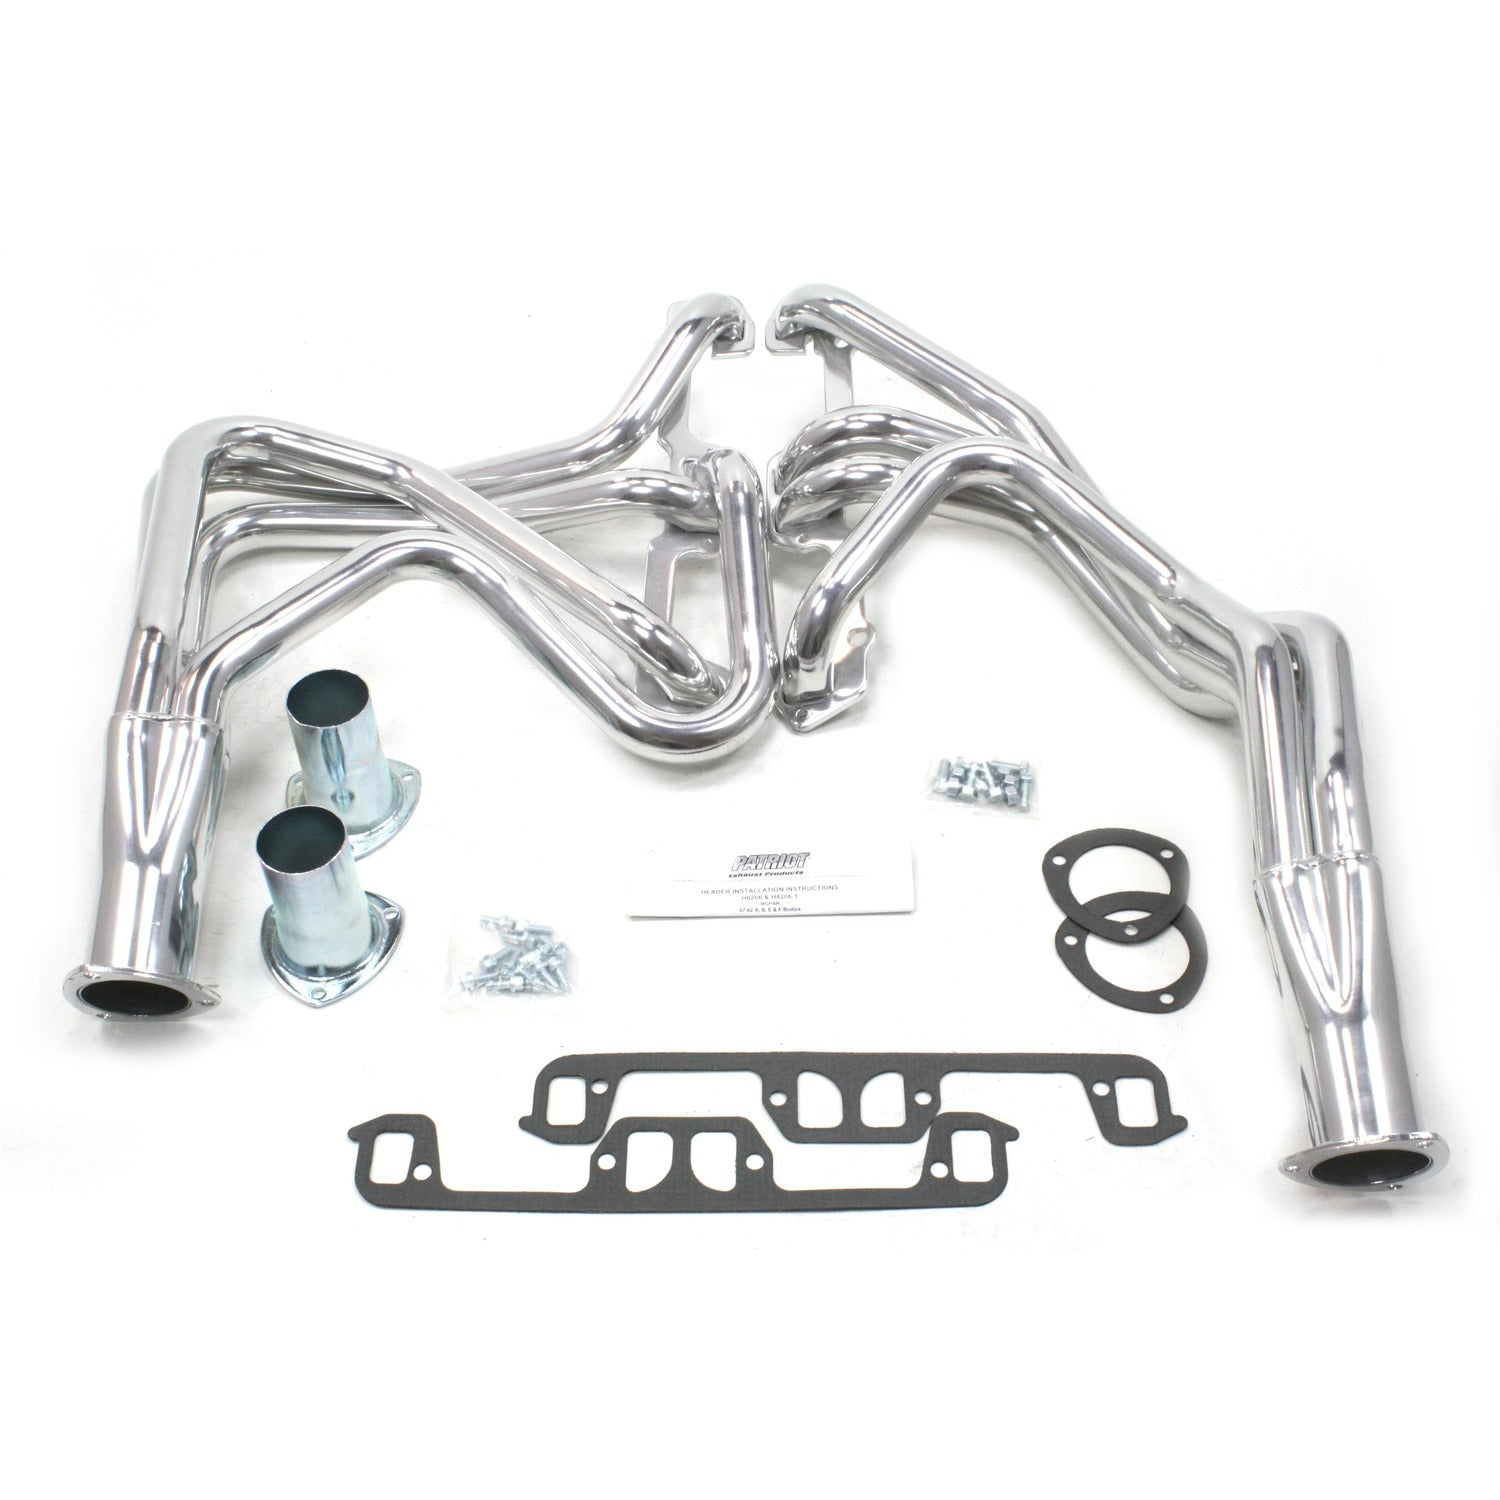 "Patriot Exhaust H8206-1 1 5/8"" Full Length Header Mopar A Body Small Block Mopar 67-82 Metallic Ceramic Coating"